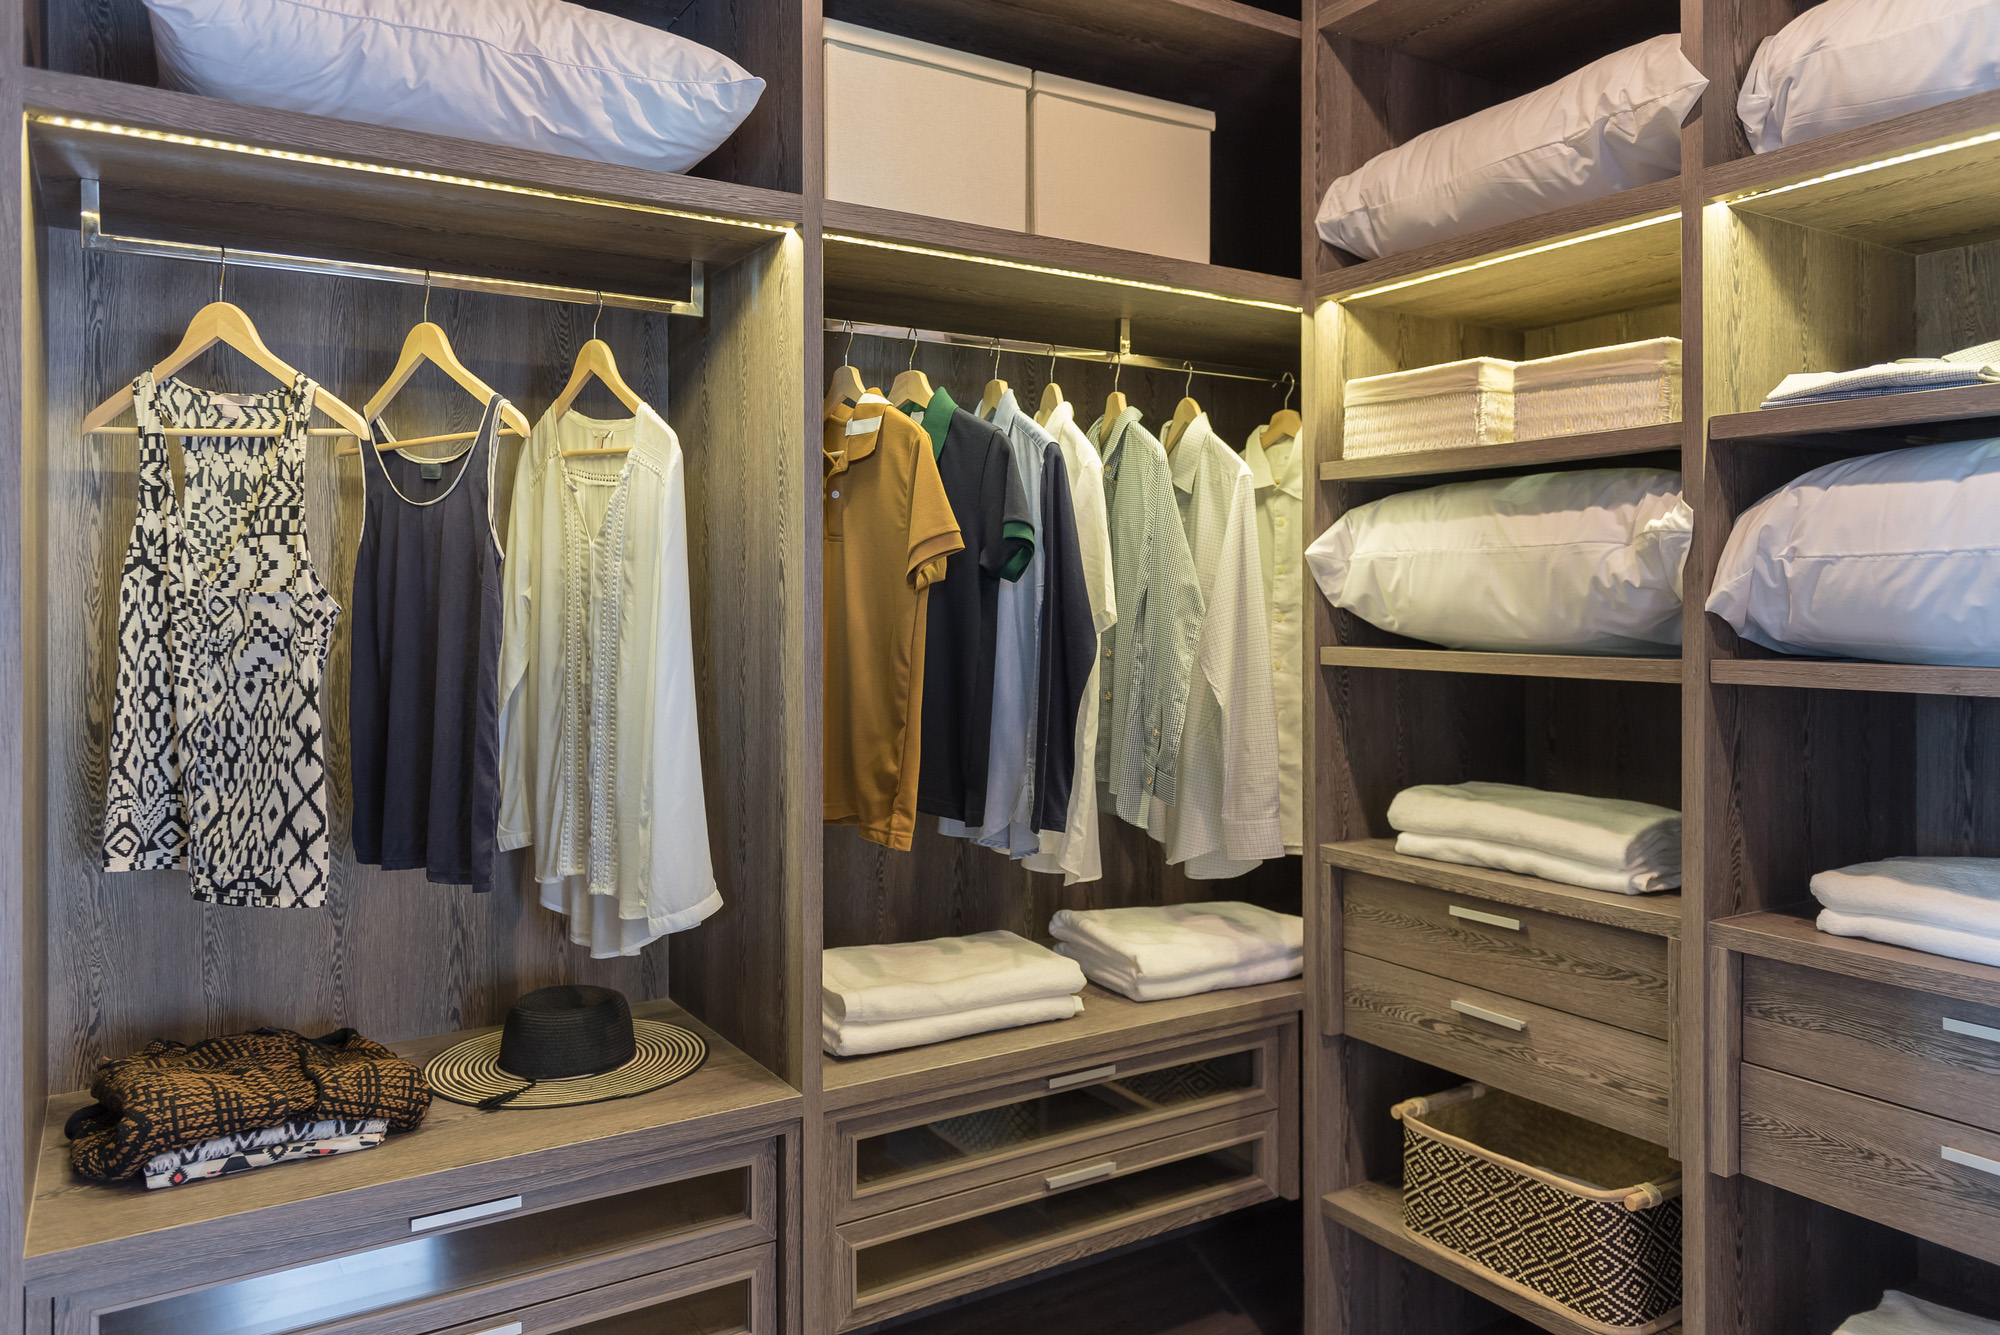 Fitted Wardrobes Ideas - Walk In Wardrobe Design Richmond, London